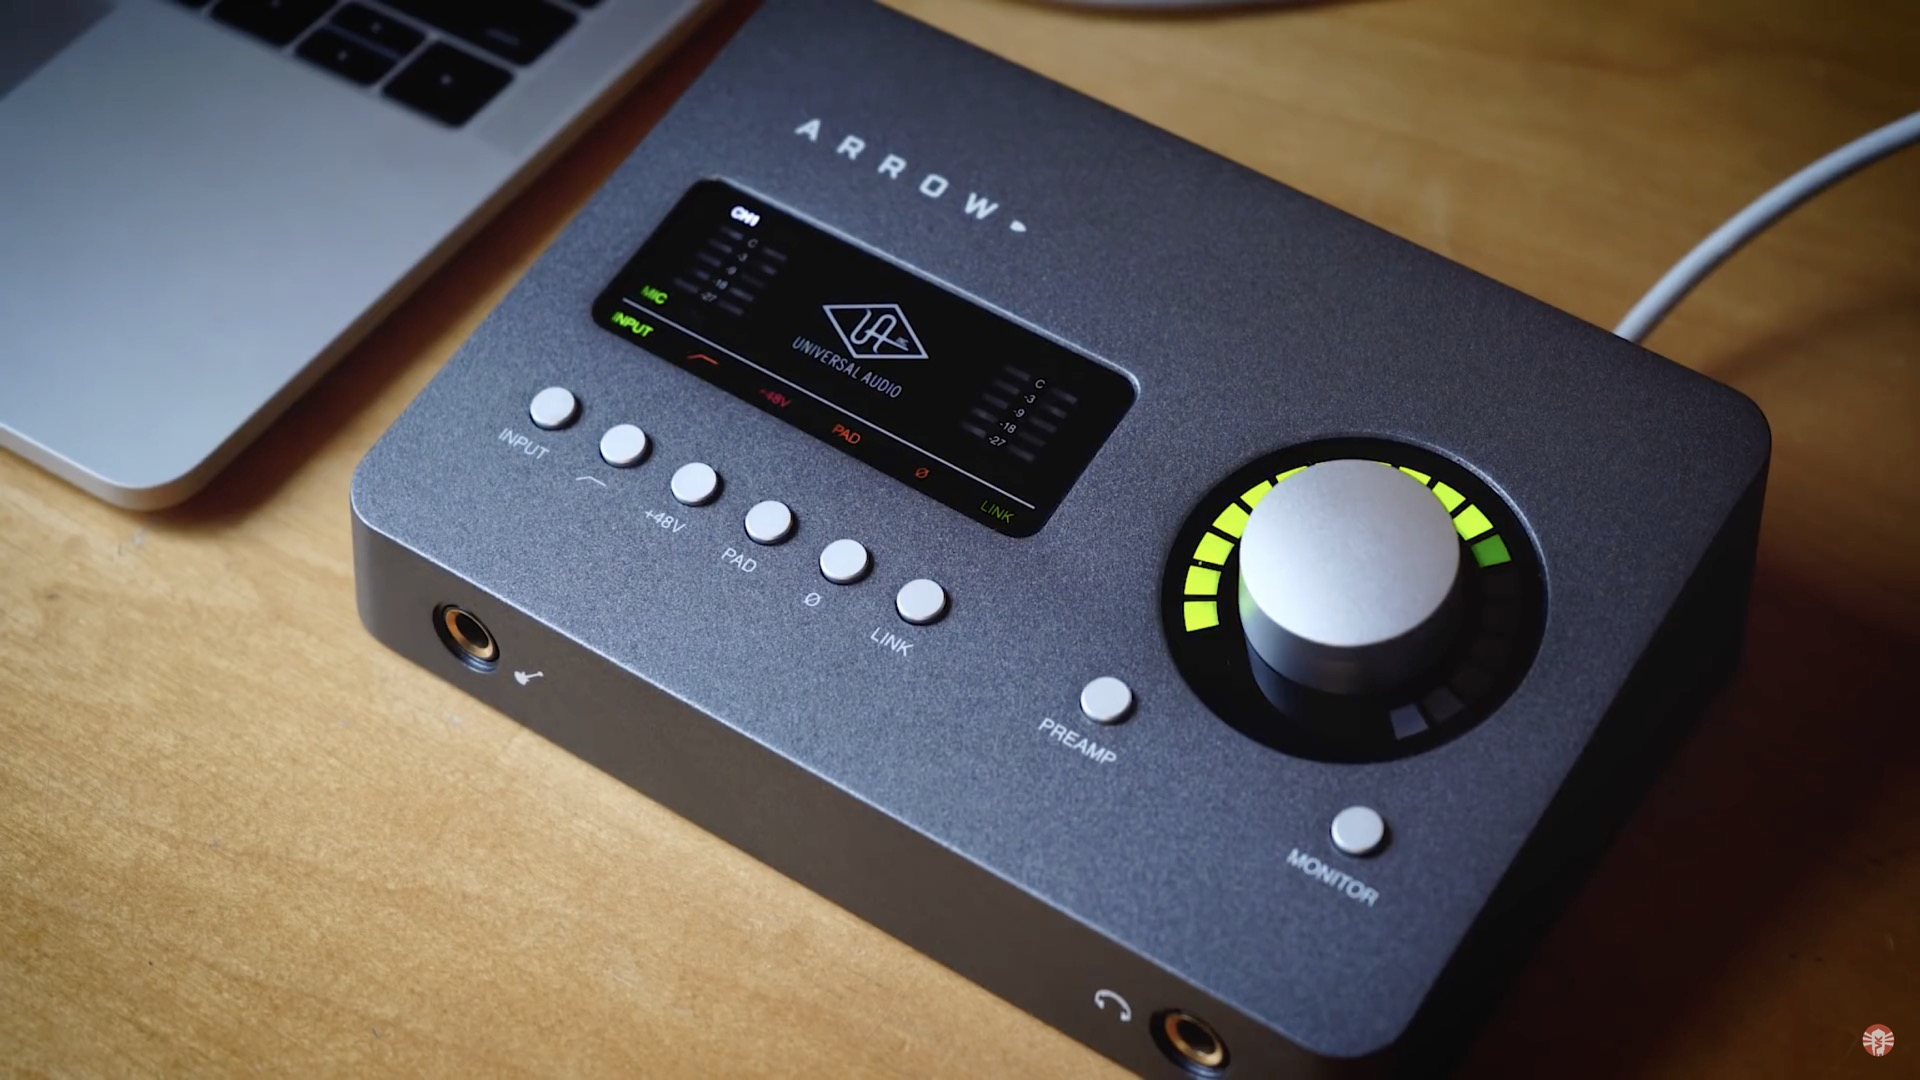 Universal Audio launches new $499 bus-powered Arrow interface with